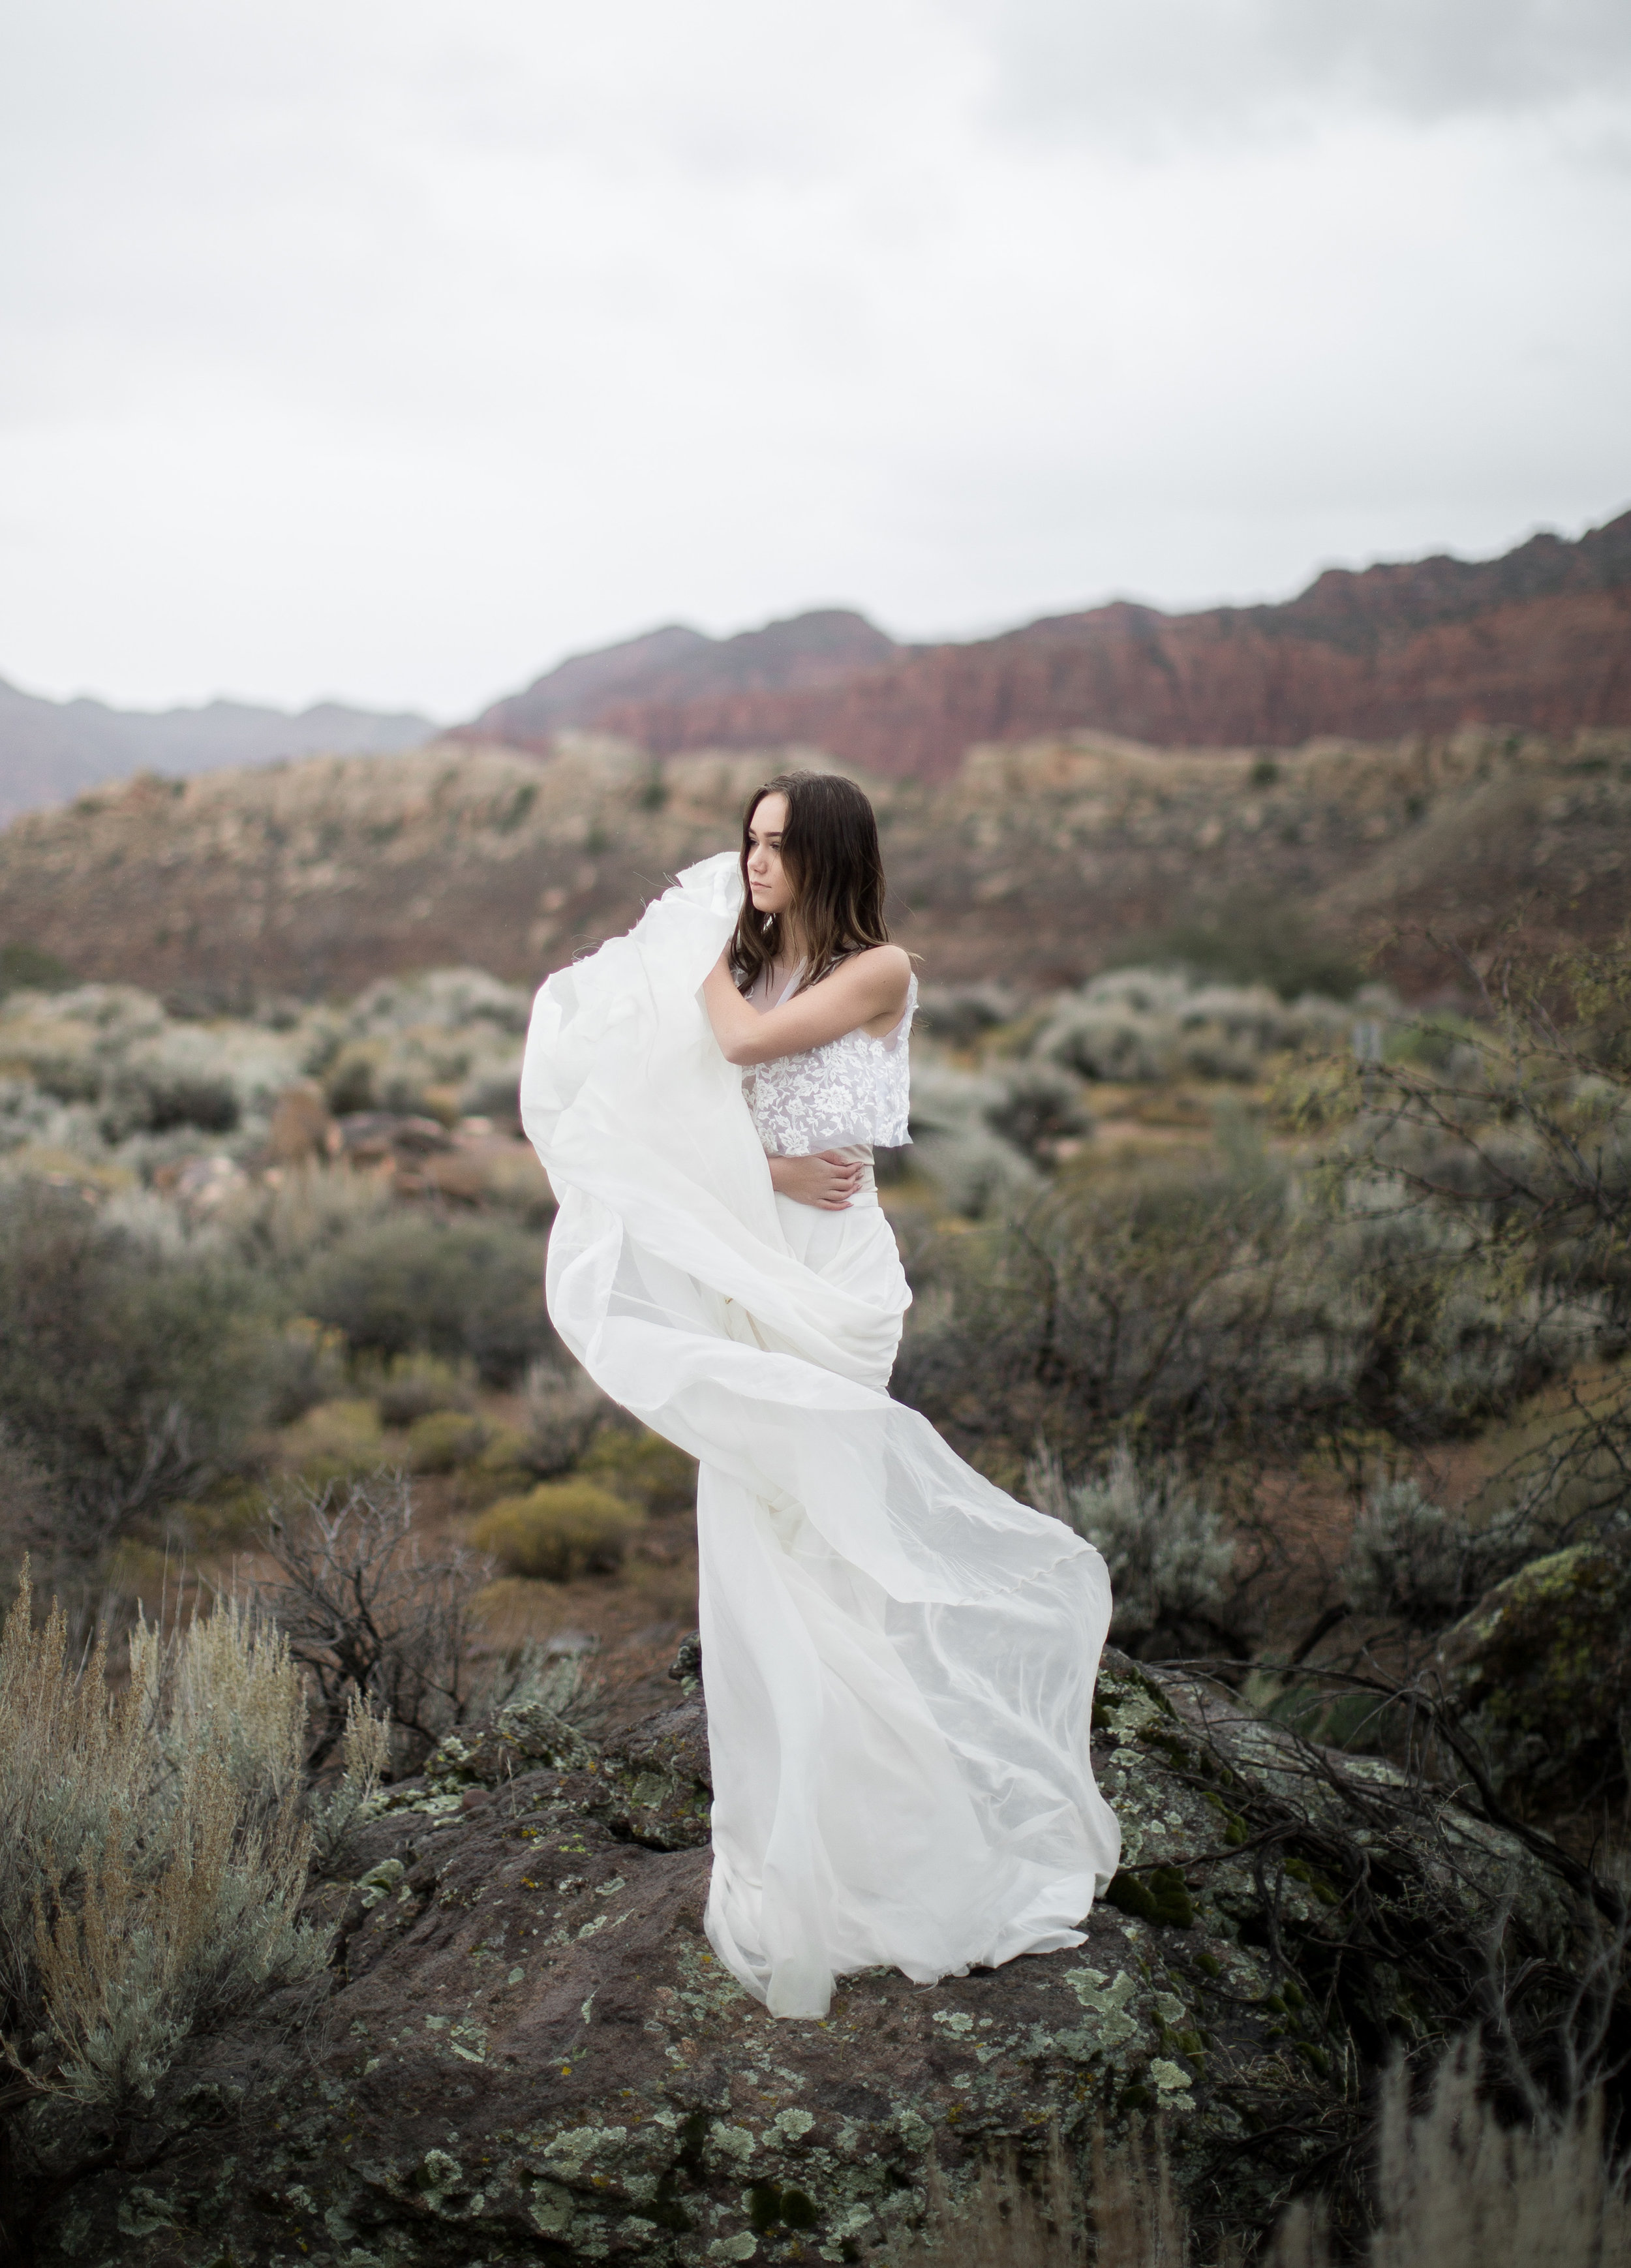 Dress - Gypsy Bride @gypsybride  Veil - Sibo Designs @sibodesigns  Shoes - Bella Belle Shoes @bellabelleshoes  Model Cere Campbell @cereously  Film Lab - PhotoVision Prints @photovisionprints